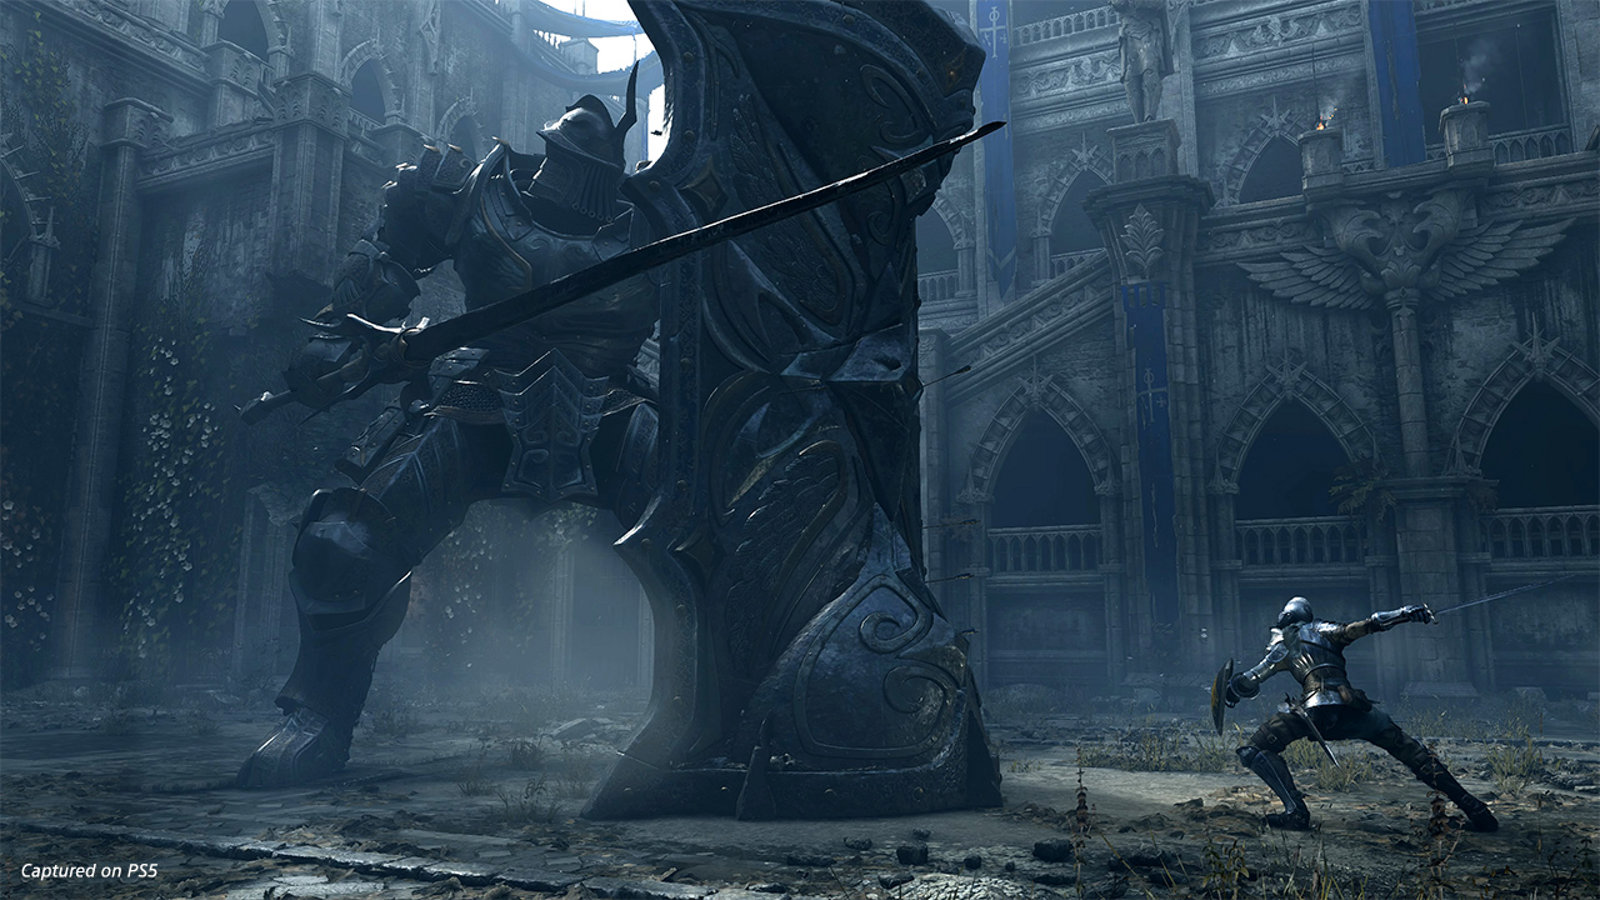 Demon S Souls Remake New Screenshot Showcases Masterful Recreation Of The Tower Knight